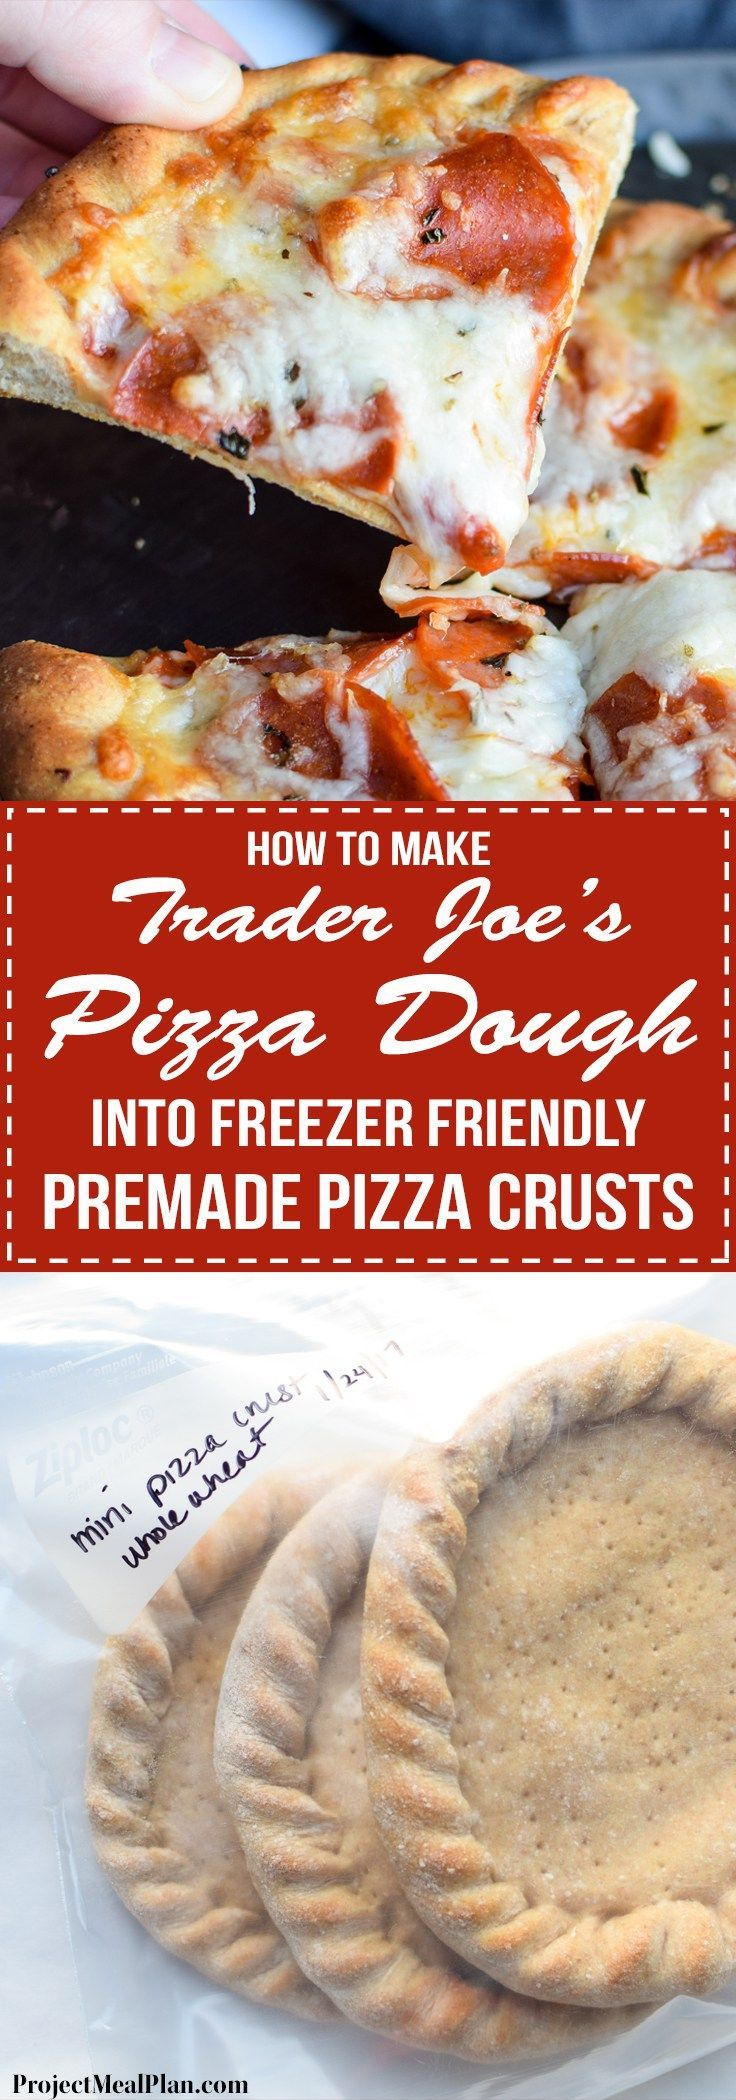 How To Make Trader Joe's Pizza Dough Into Freezer Friendly Premade Pizza Crusts - Four mini pizza crusts in the freezer for emergencies!! Using SUPER cheap Trader Joe's dough! - http://ProjectMealPlan.com